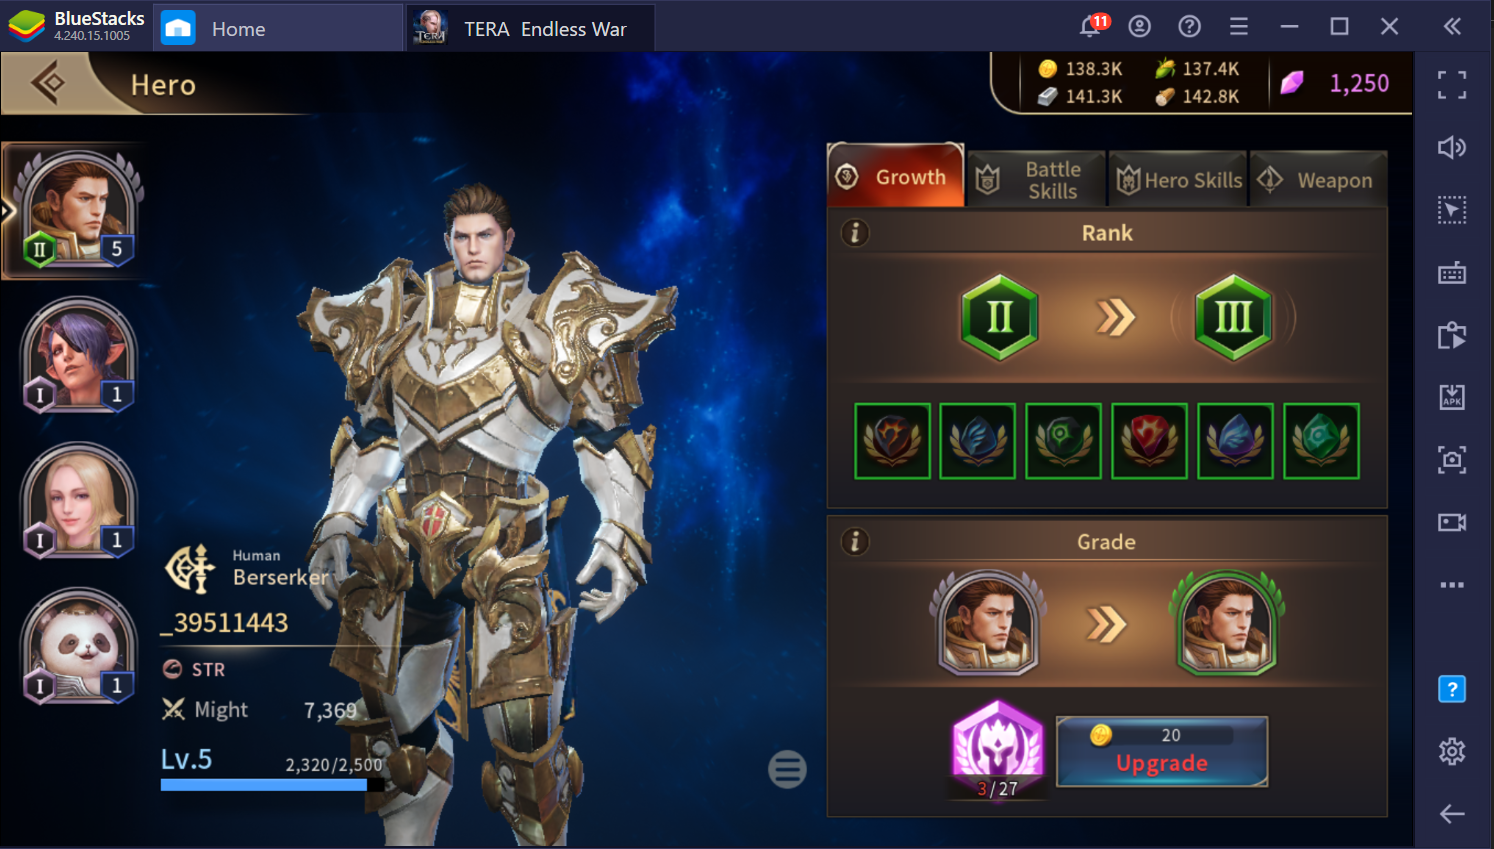 Save Arborea from the Argon in the Brand-new TERA: Endless War (Now on BlueStacks)